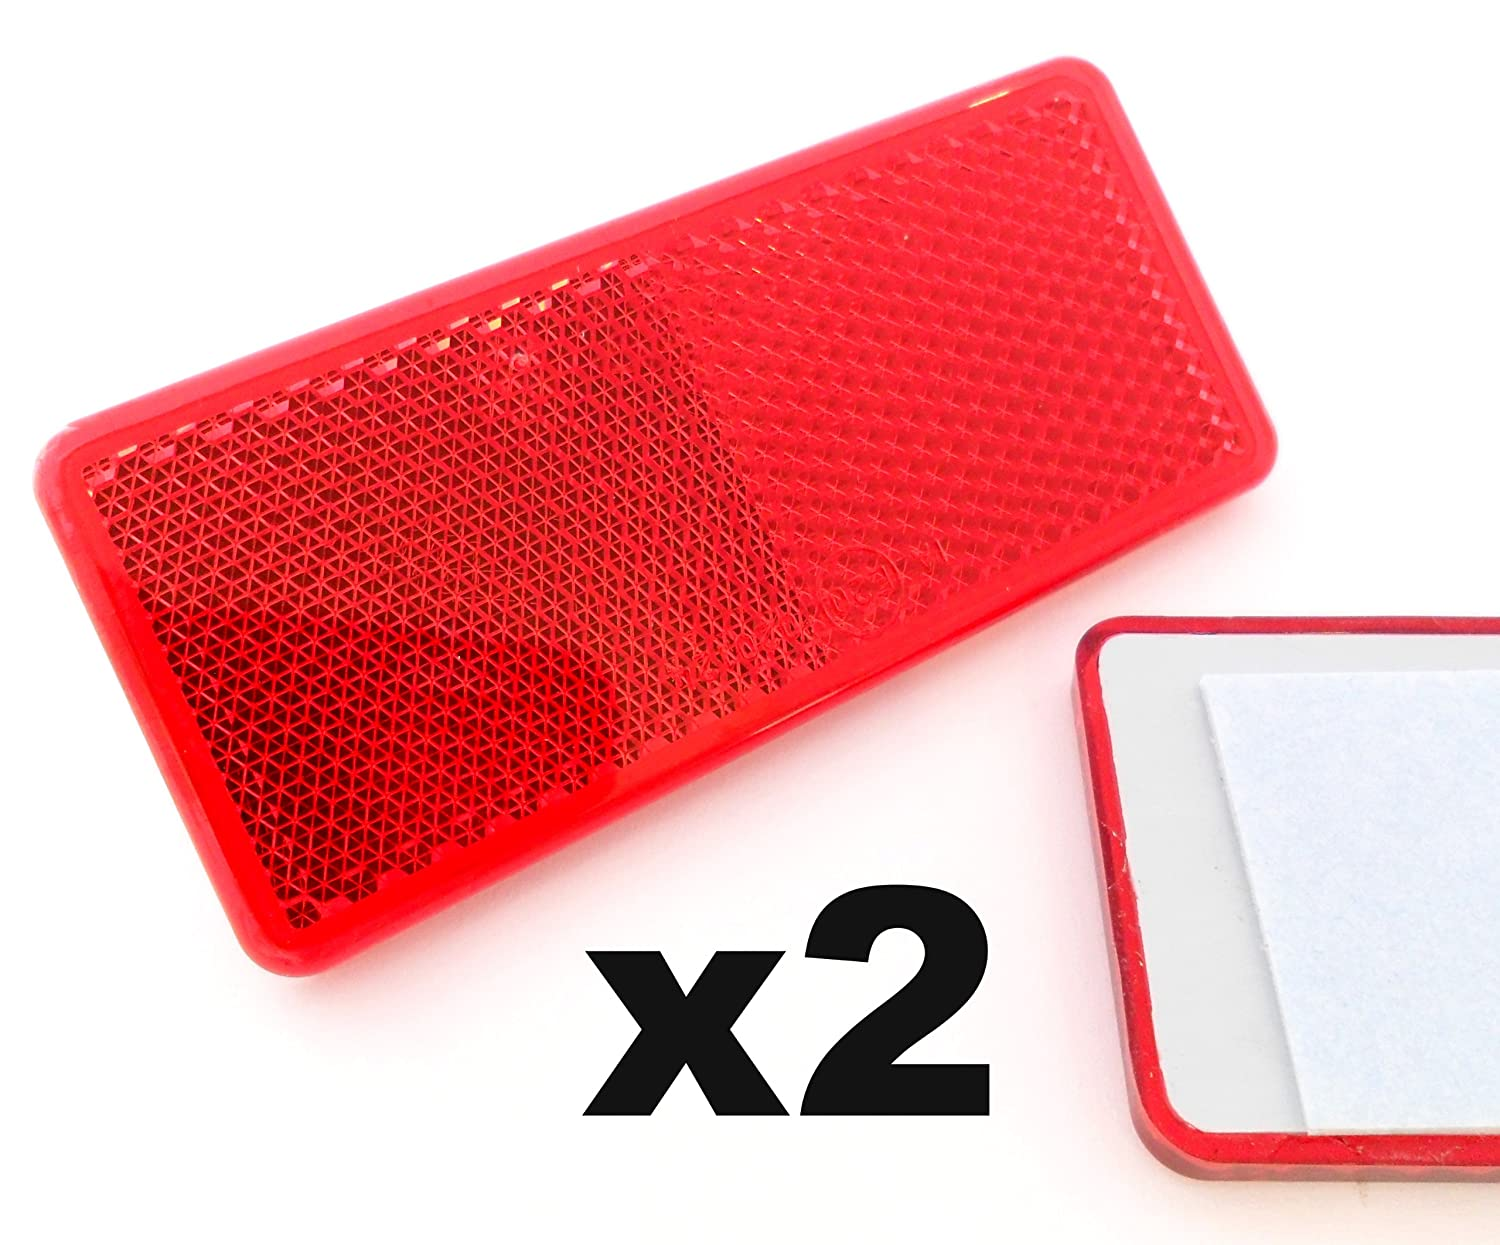 Reflectors x2 Self-Adhesive Red Approved Rectangular Trailer Caravan - FREE FIRST CLASS UK POSTAGE! Aspock